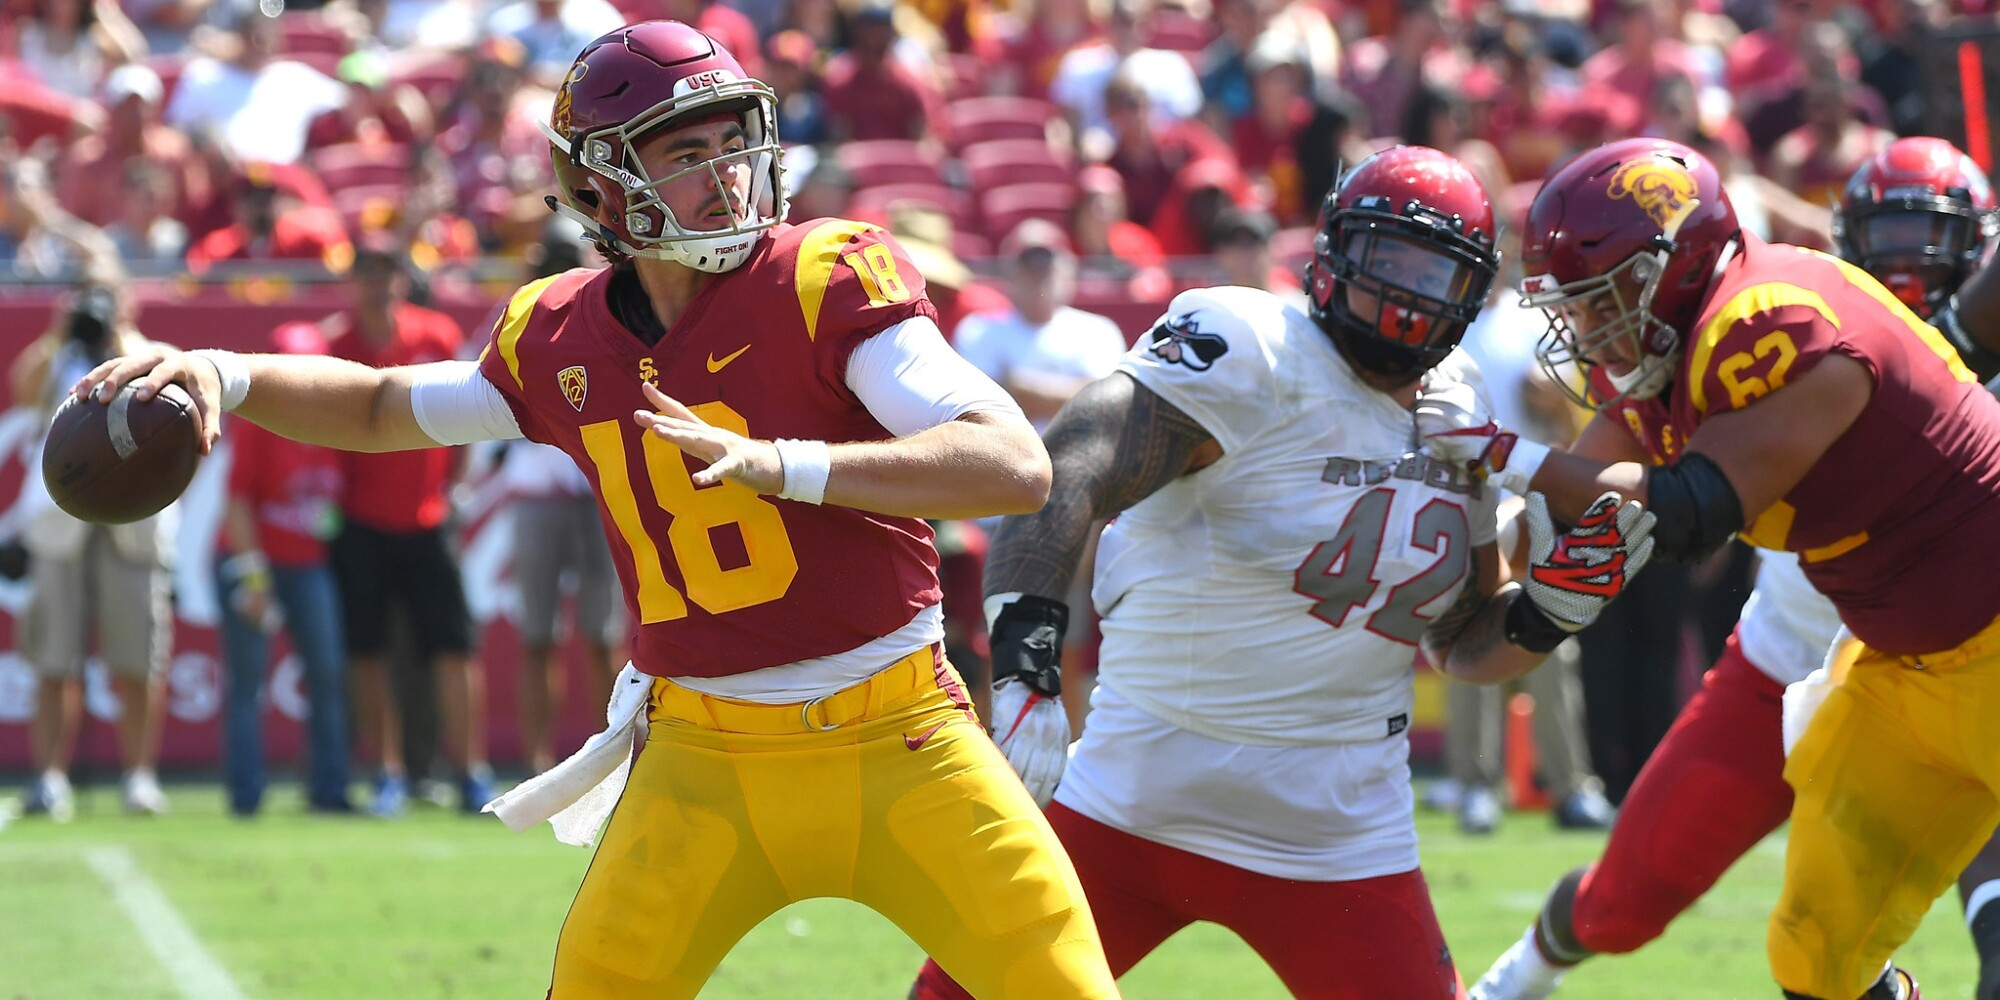 USC vs. UNLV: Trojans 43, Rebels 21 (final)